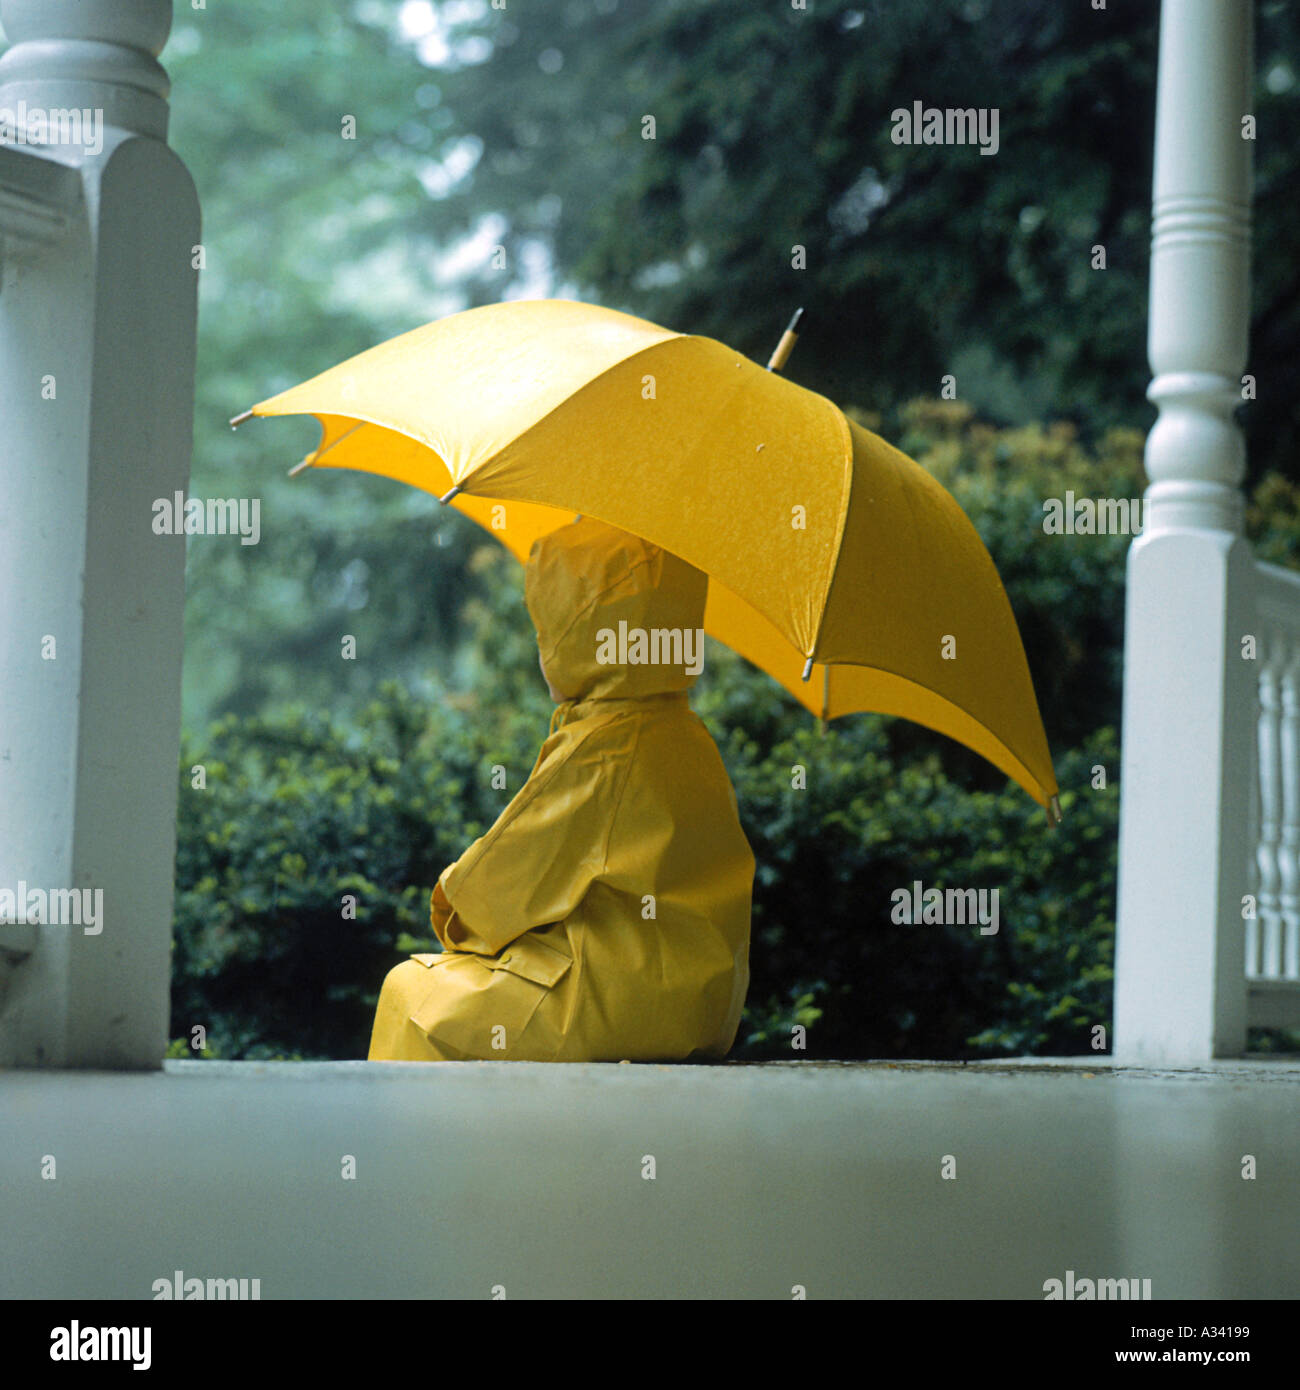 a young child wearing a yellow rain coat and rain boots